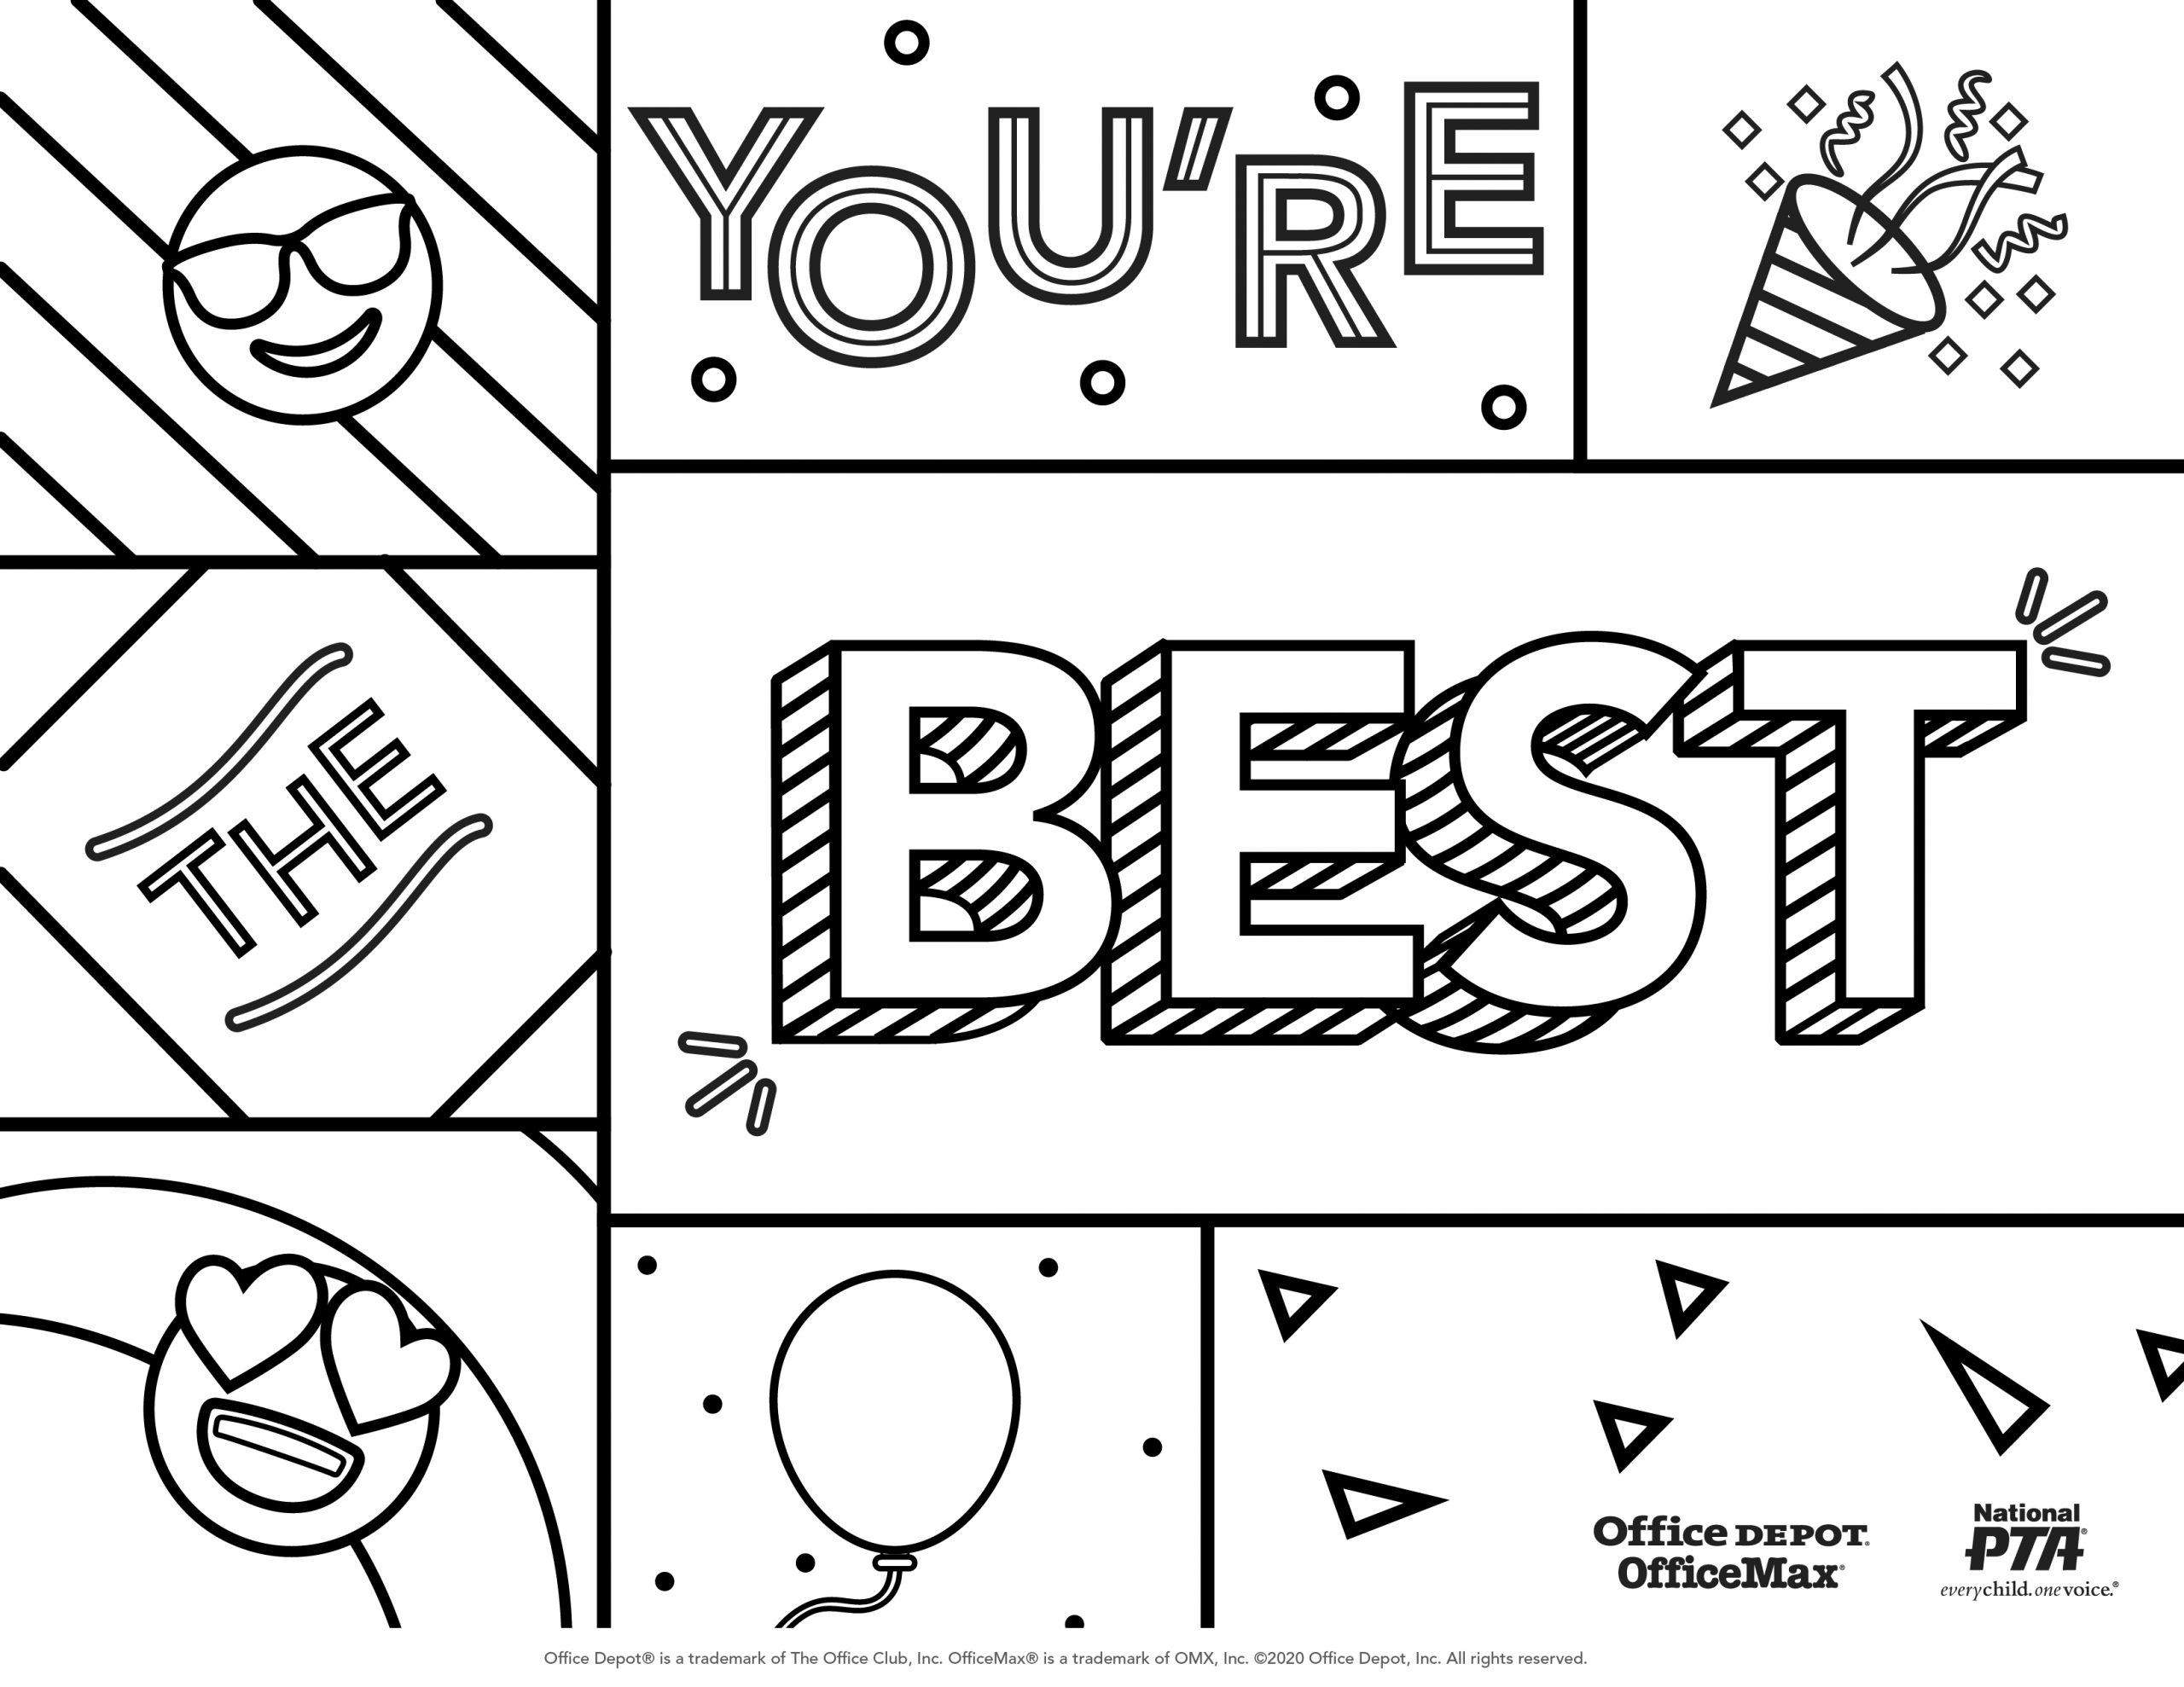 coloring pages for teachers appreciation teacher appreciation day coloring sheets vingel appreciation coloring for pages teachers